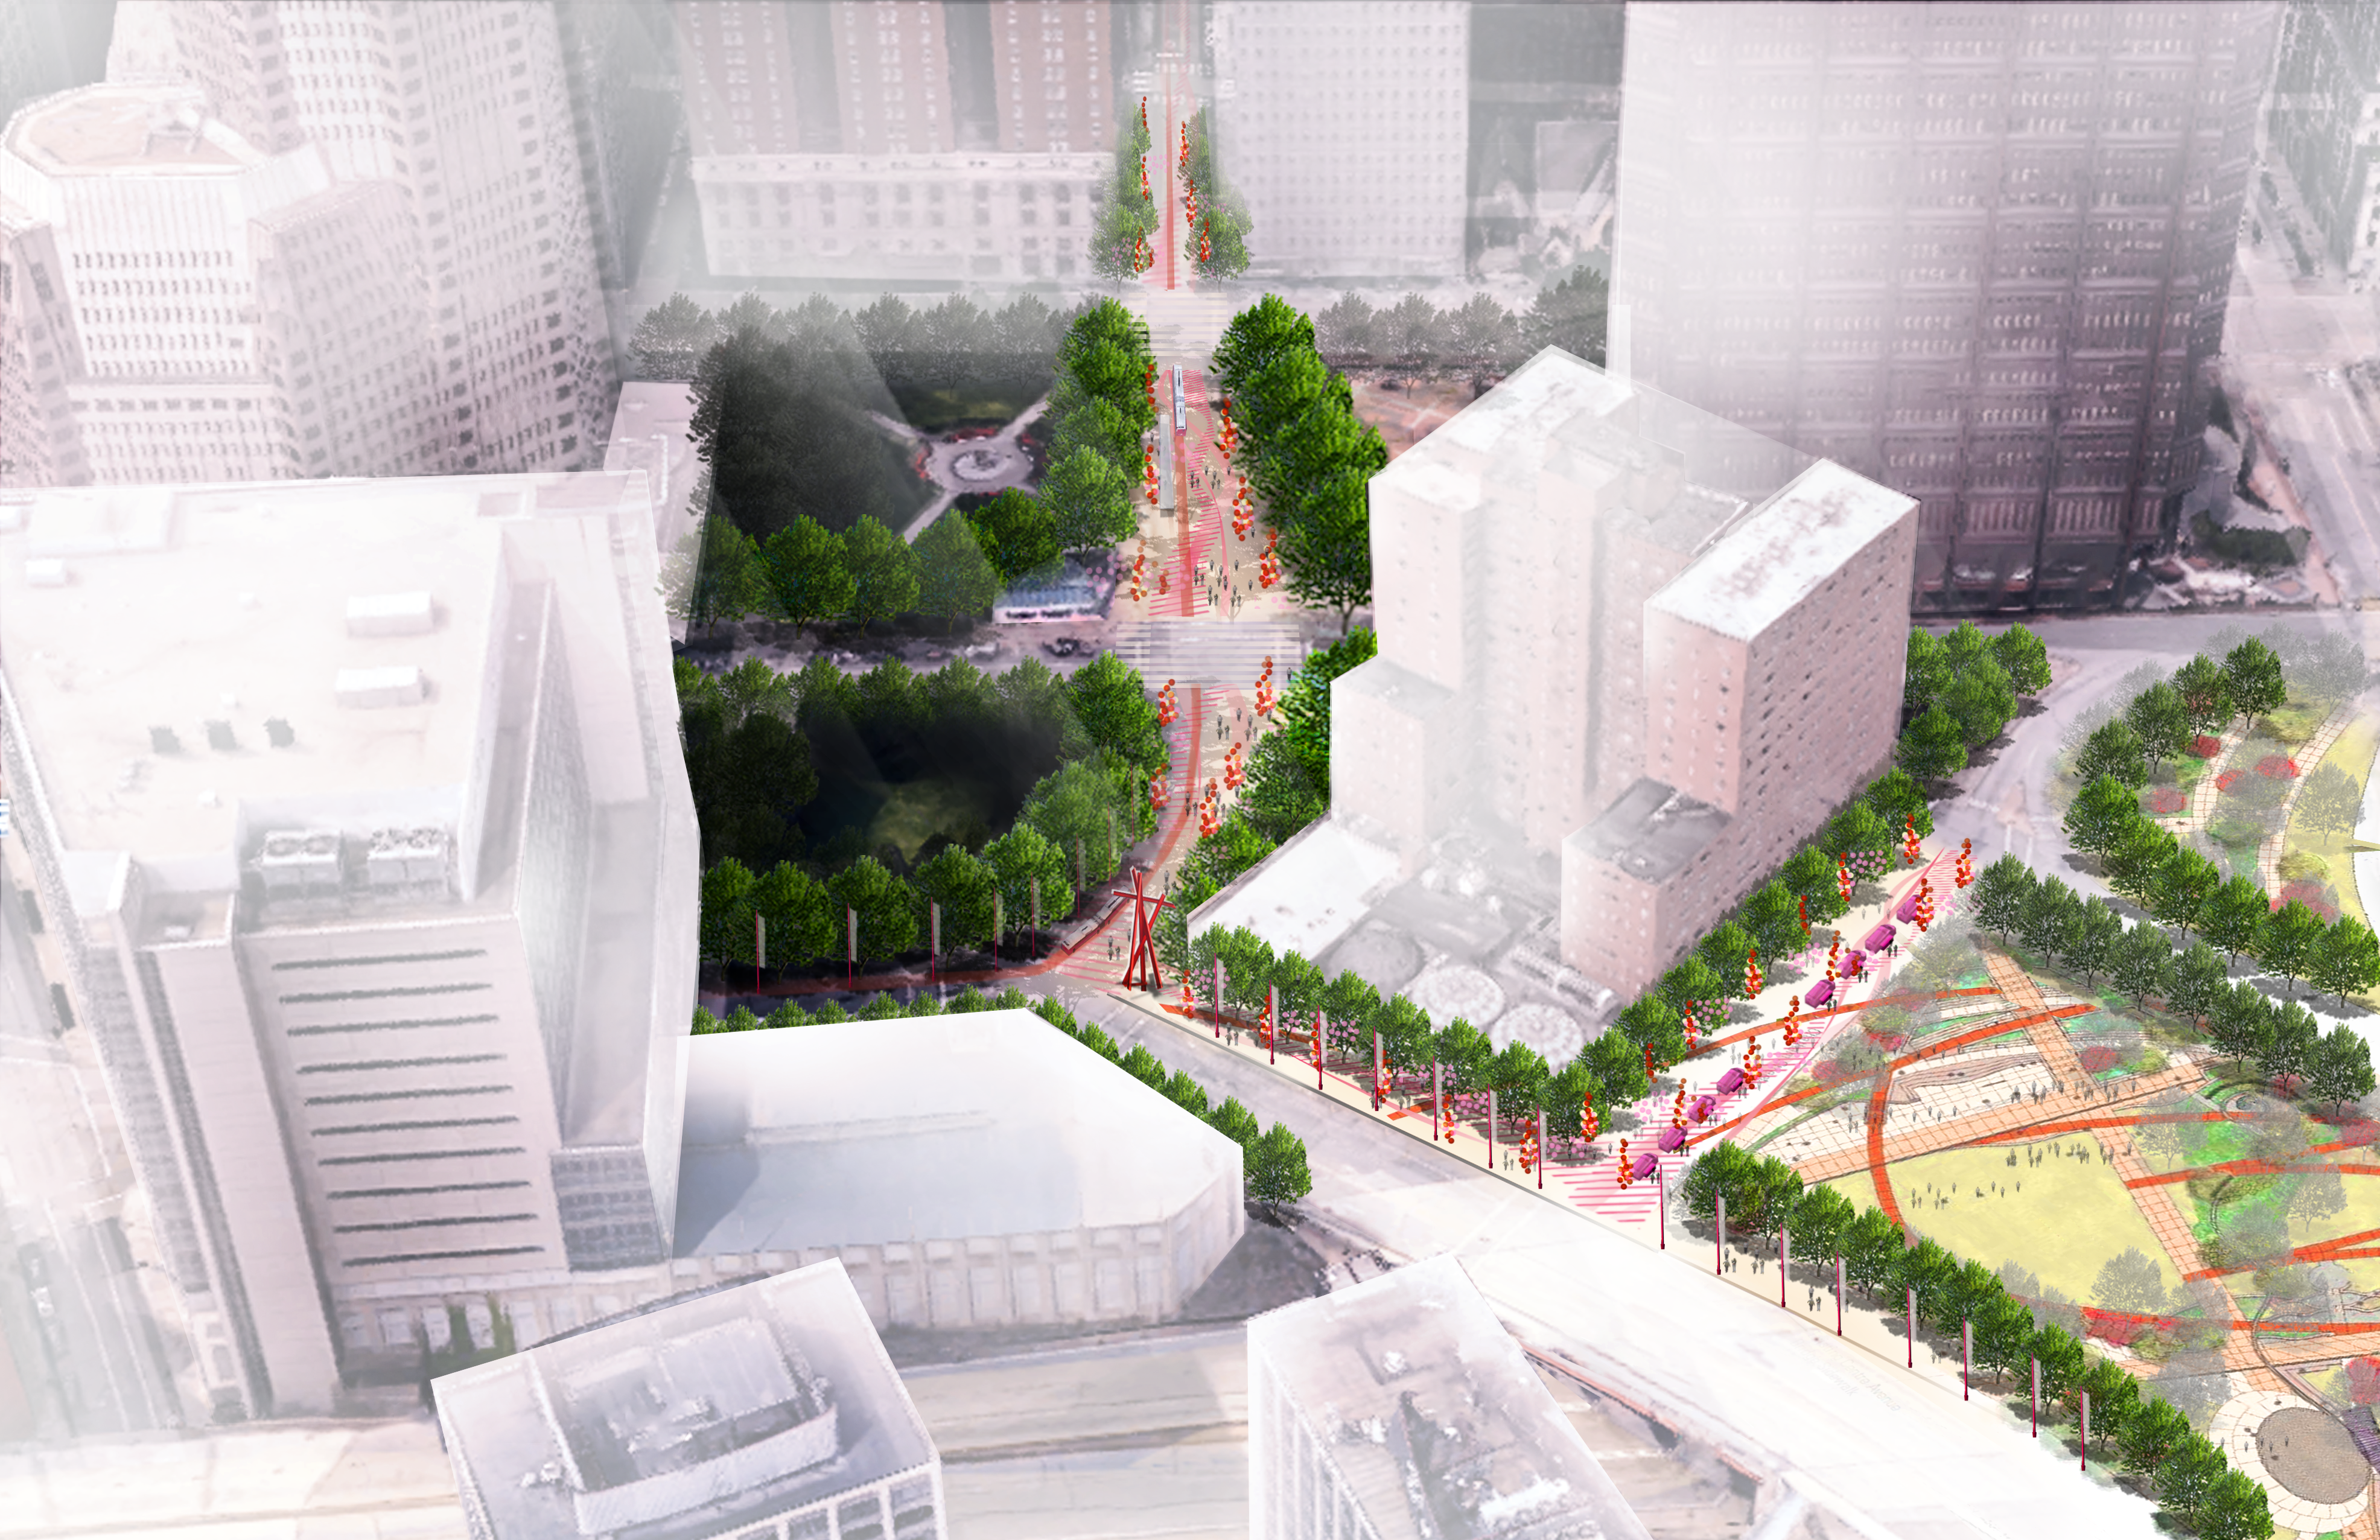 Illustration of future downtown with white buildings and connected paths